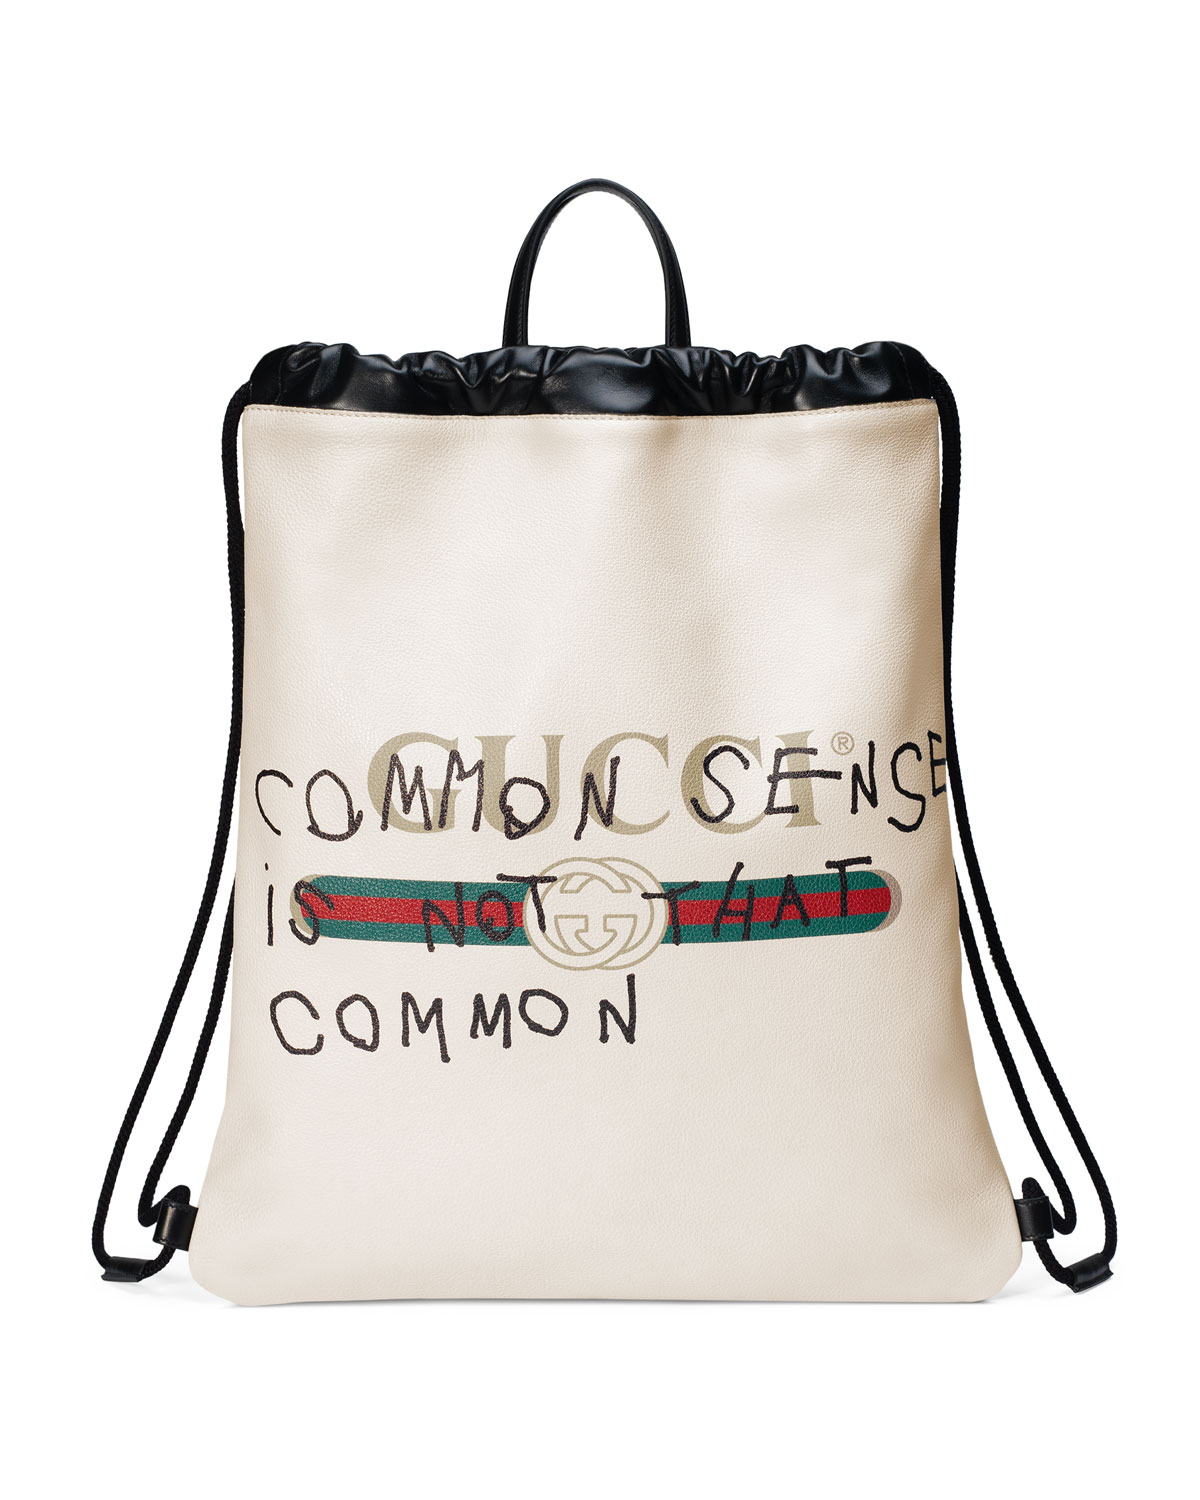 3d7d8c99cdf9 Gucci Gucci-Print Leather Drawstring Backpack, White | Neiman Marcus